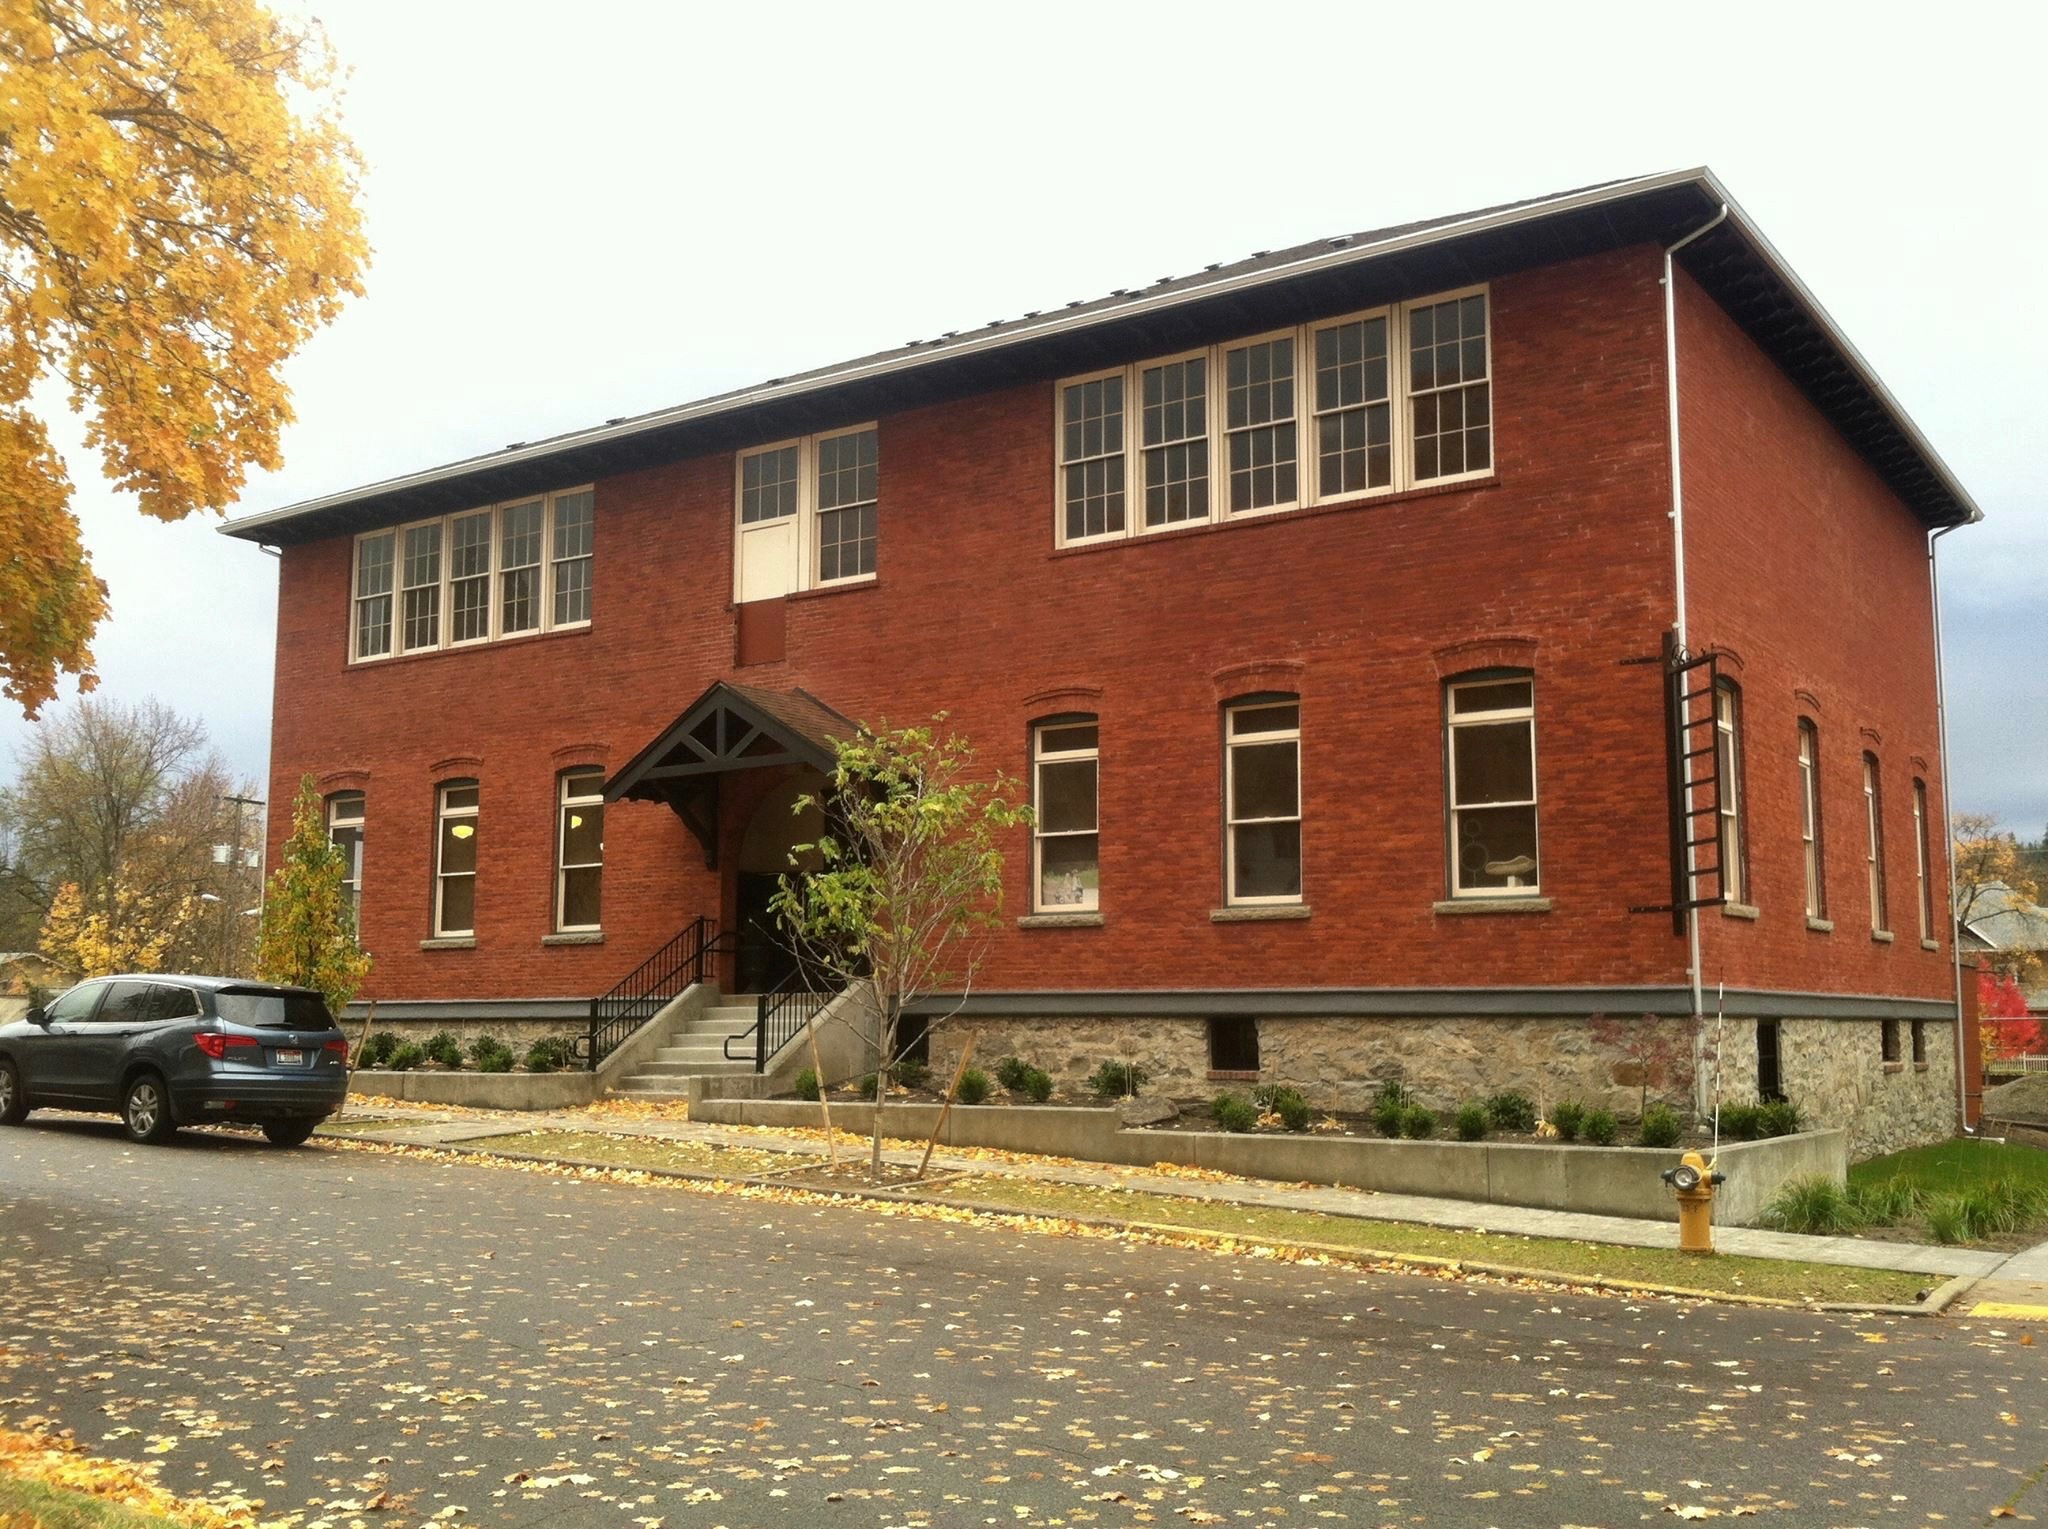 Redbrick Art Studio is located in Suite #2 of the old Central School building in downtown Coeur d'Alene, 602 E Garden Avenue.